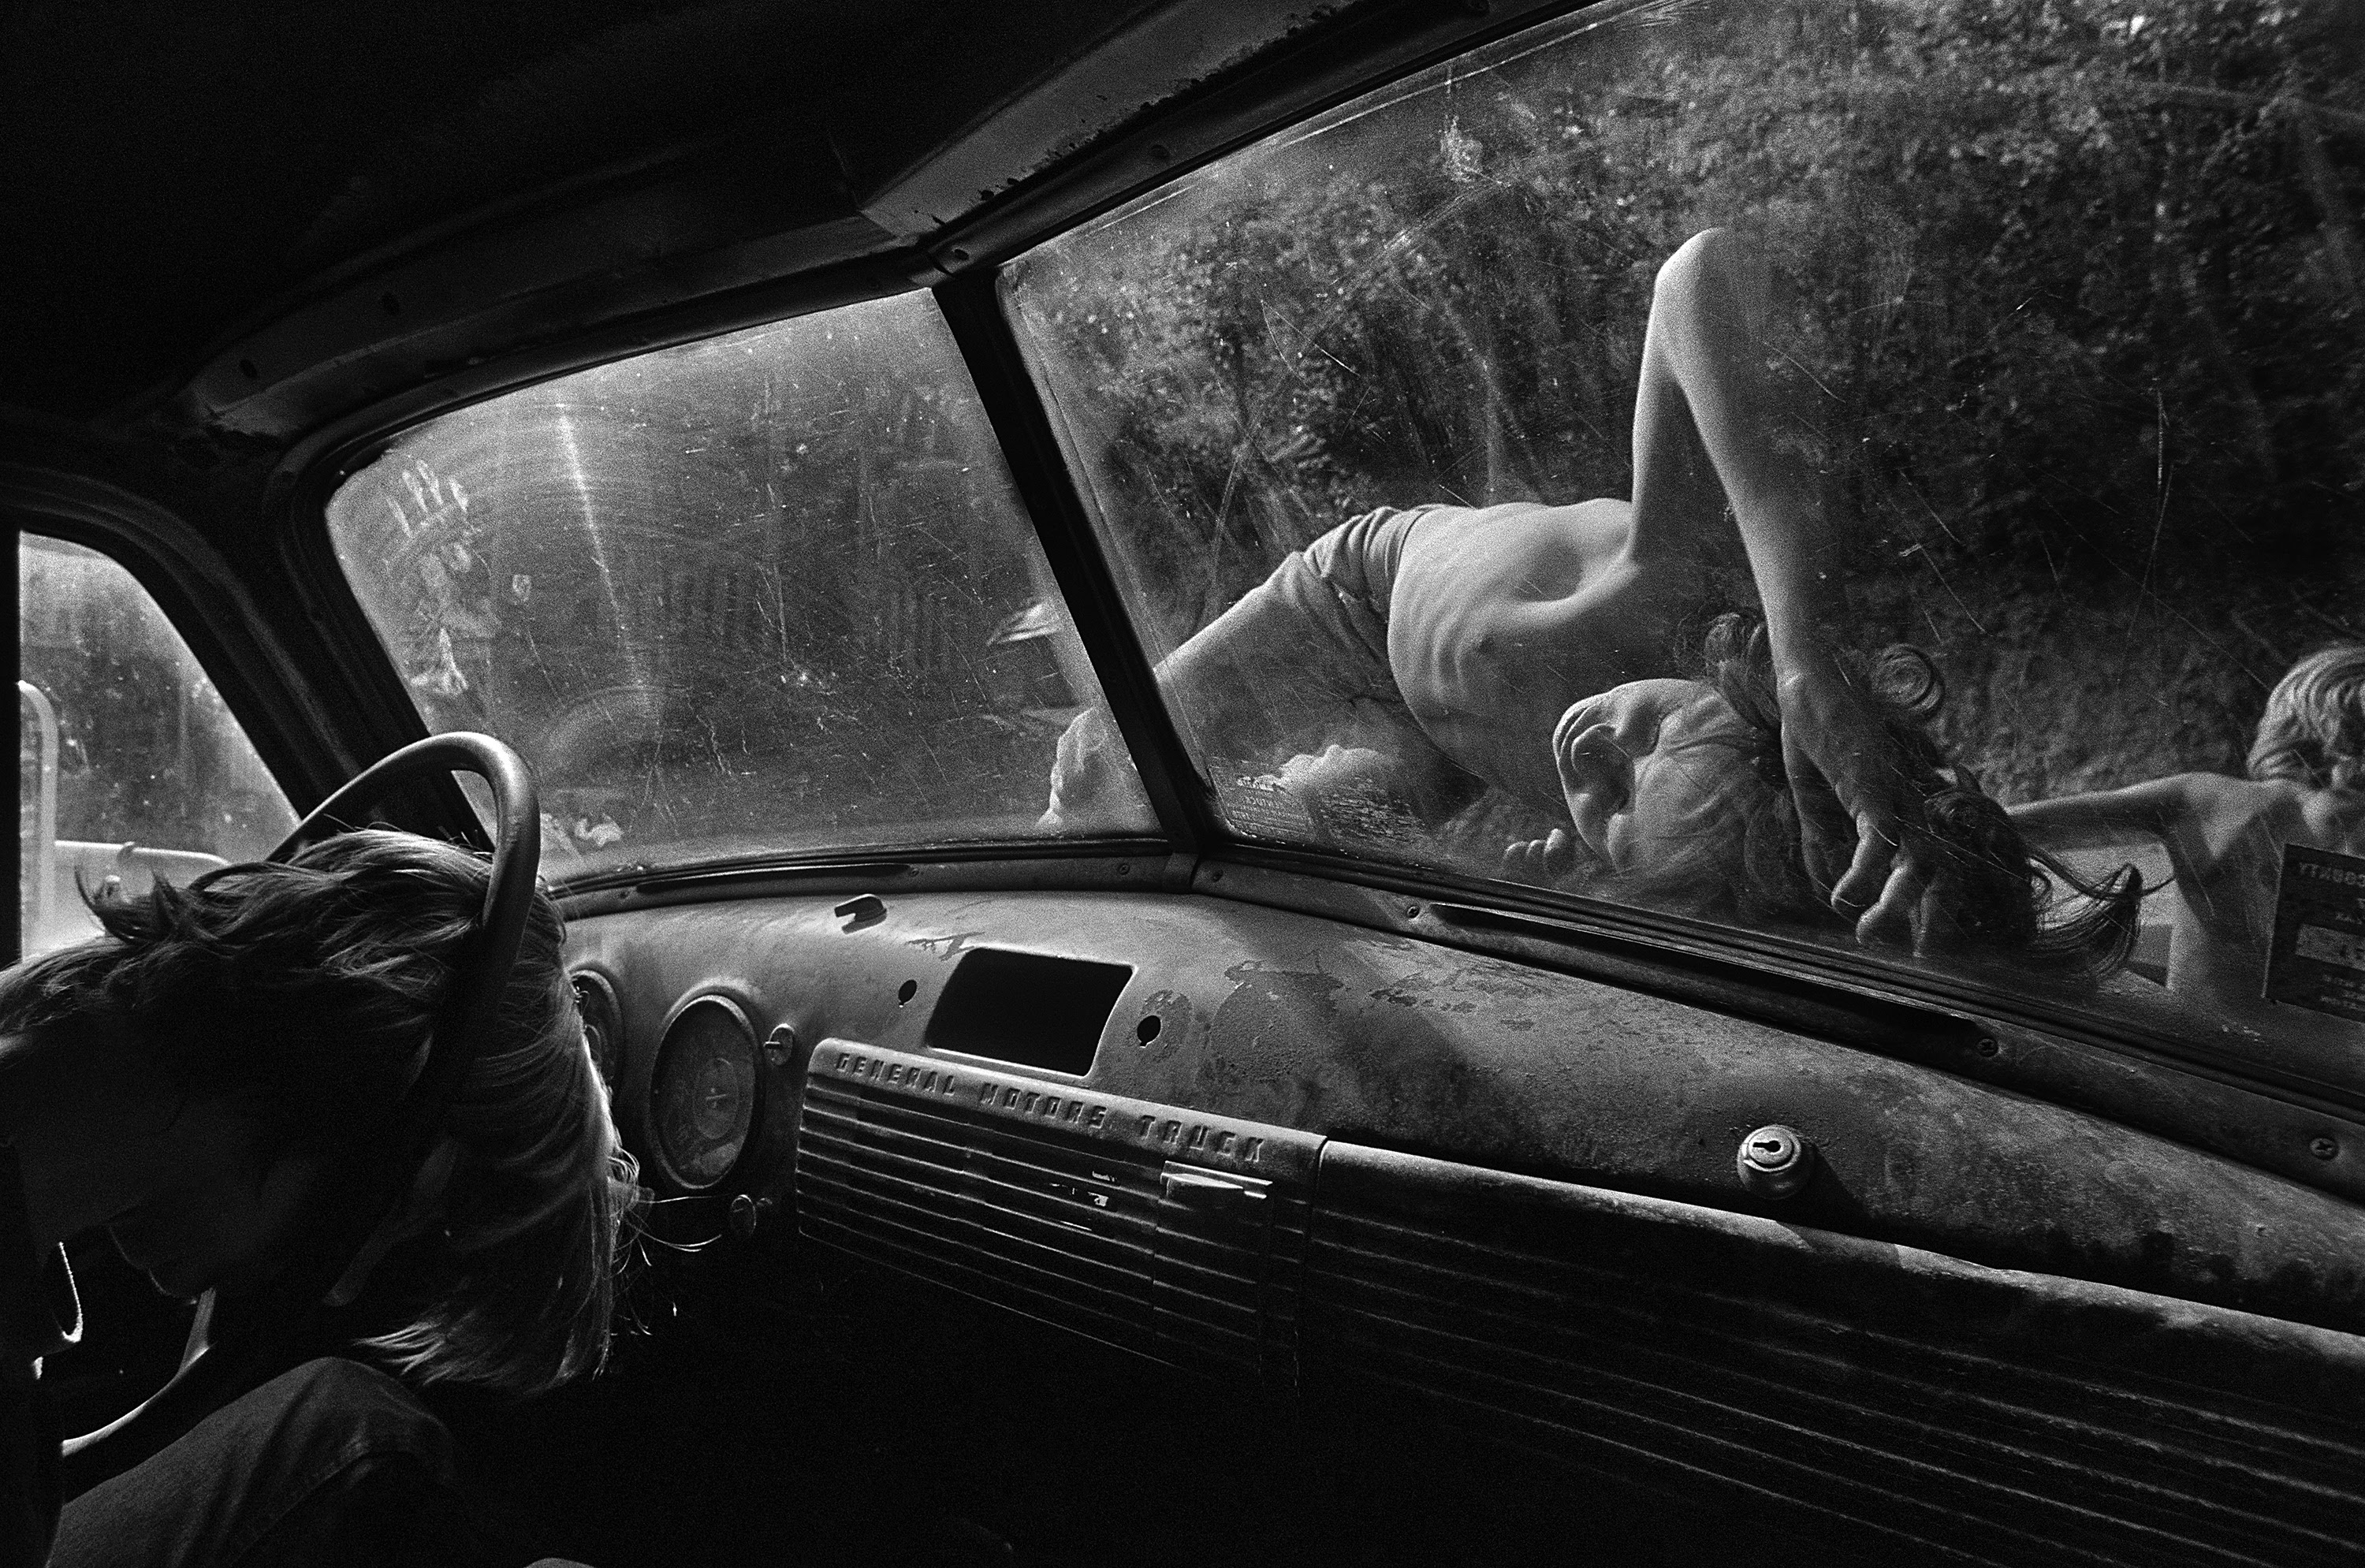 Caption: Boys sleep on the hood of a pickup truck on a hot summer day in Still House Hollow, Tennessee.Title: Still House Hollow, Tennessee, 1986